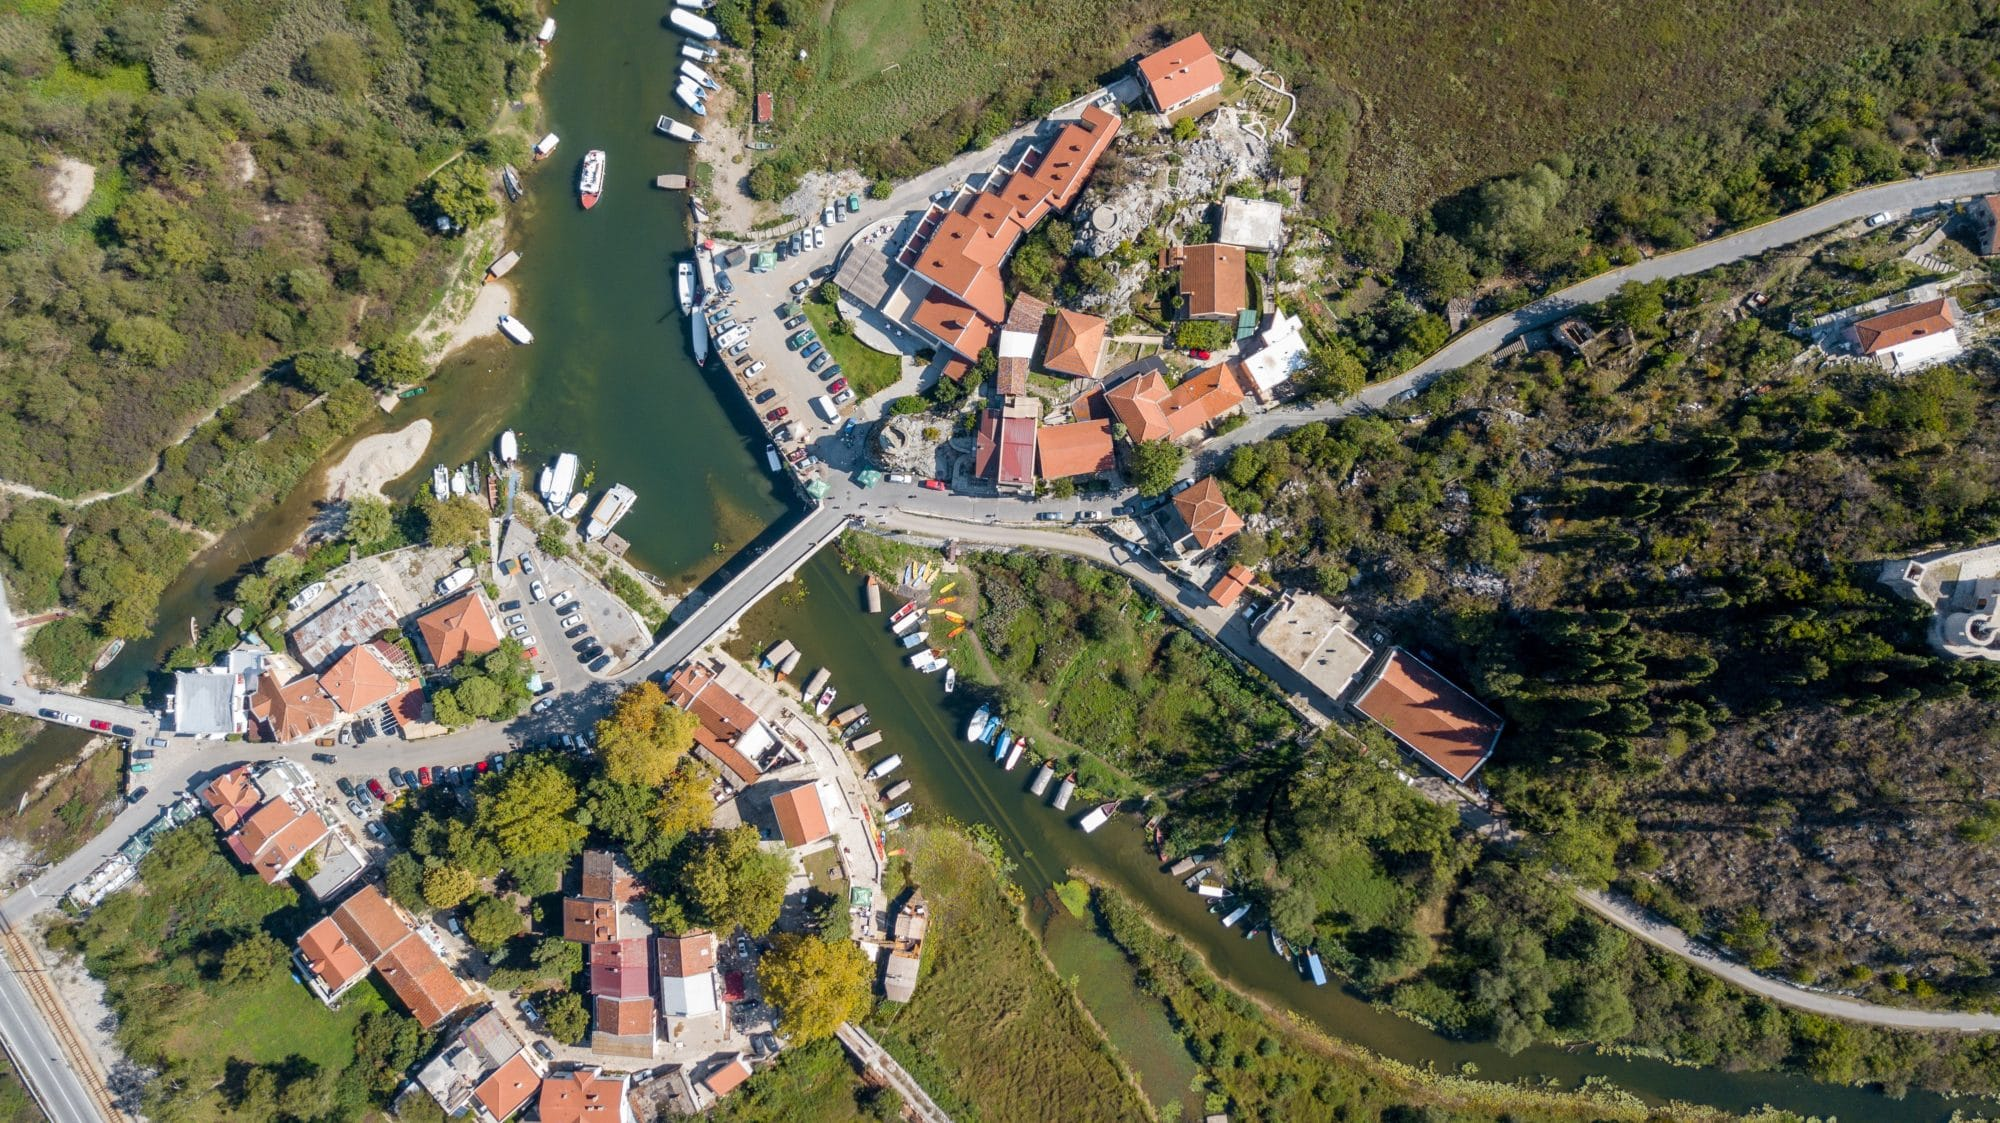 The most attractive buy-to-let properties in Montenegro feature traditional architecture and boat access.